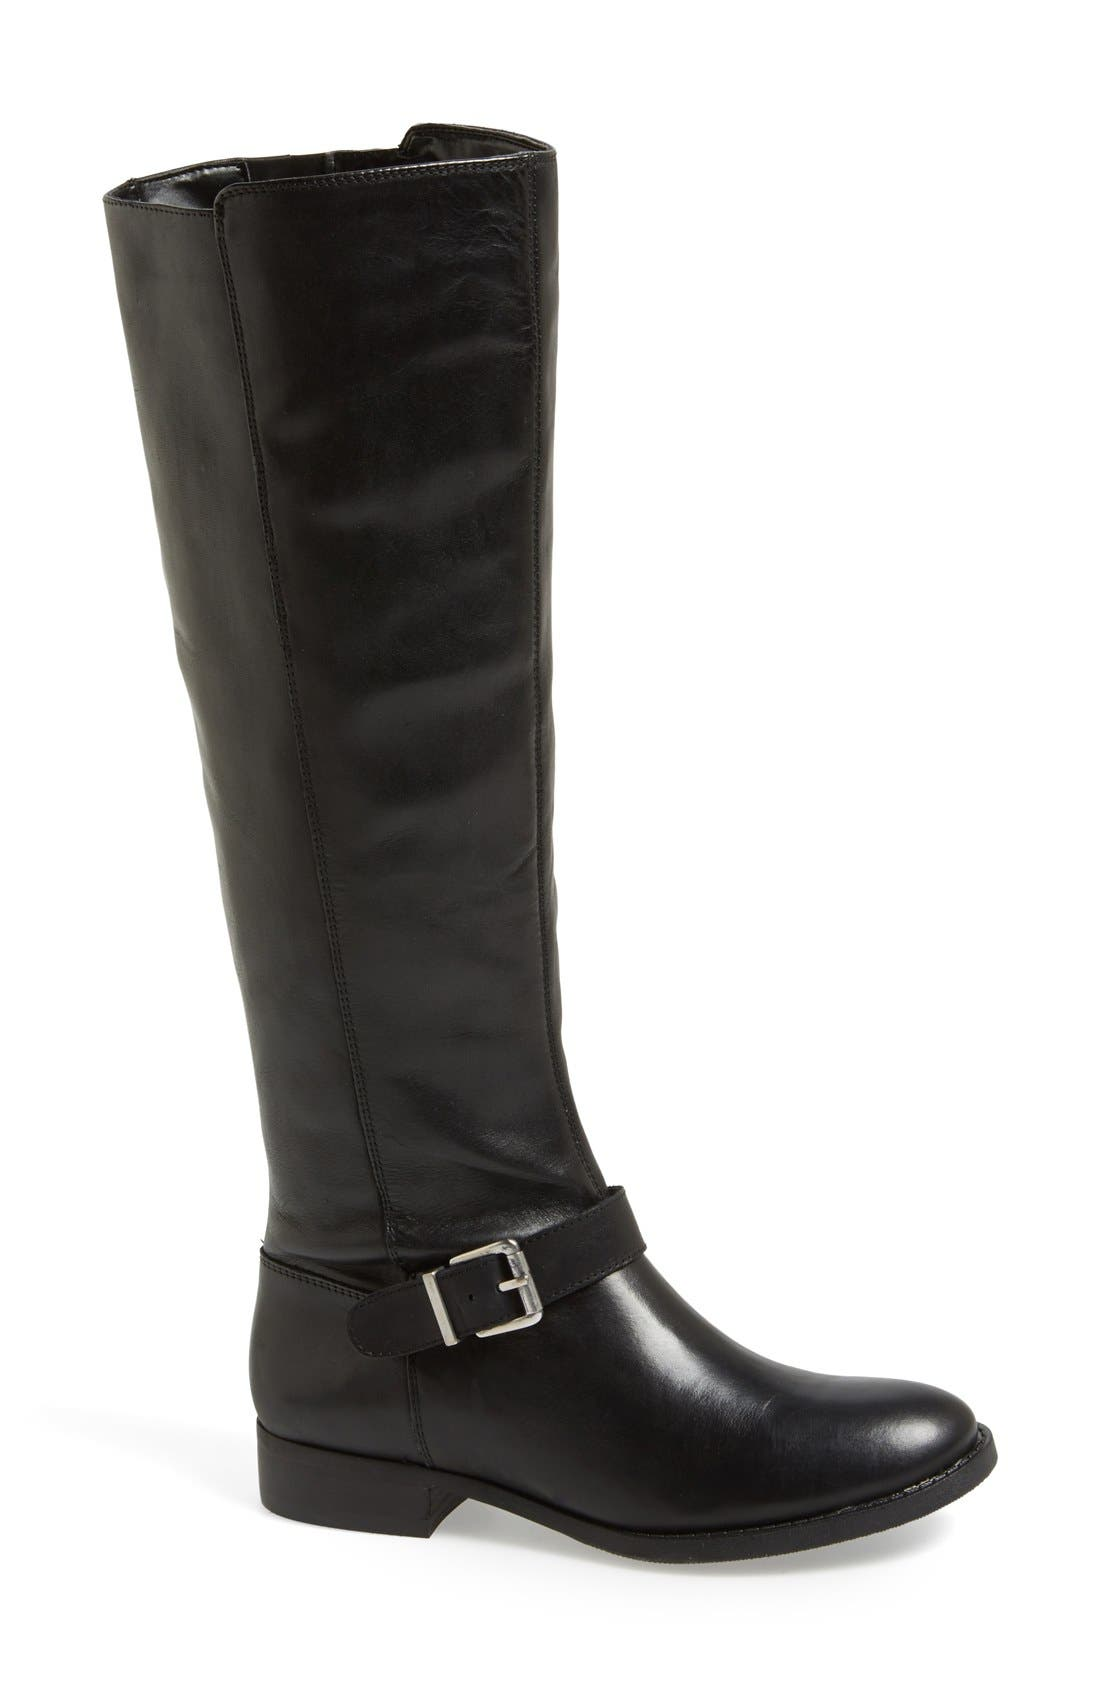 Alternate Image 1 Selected - Sole Society 'Shineh' Riding Boot (Women)